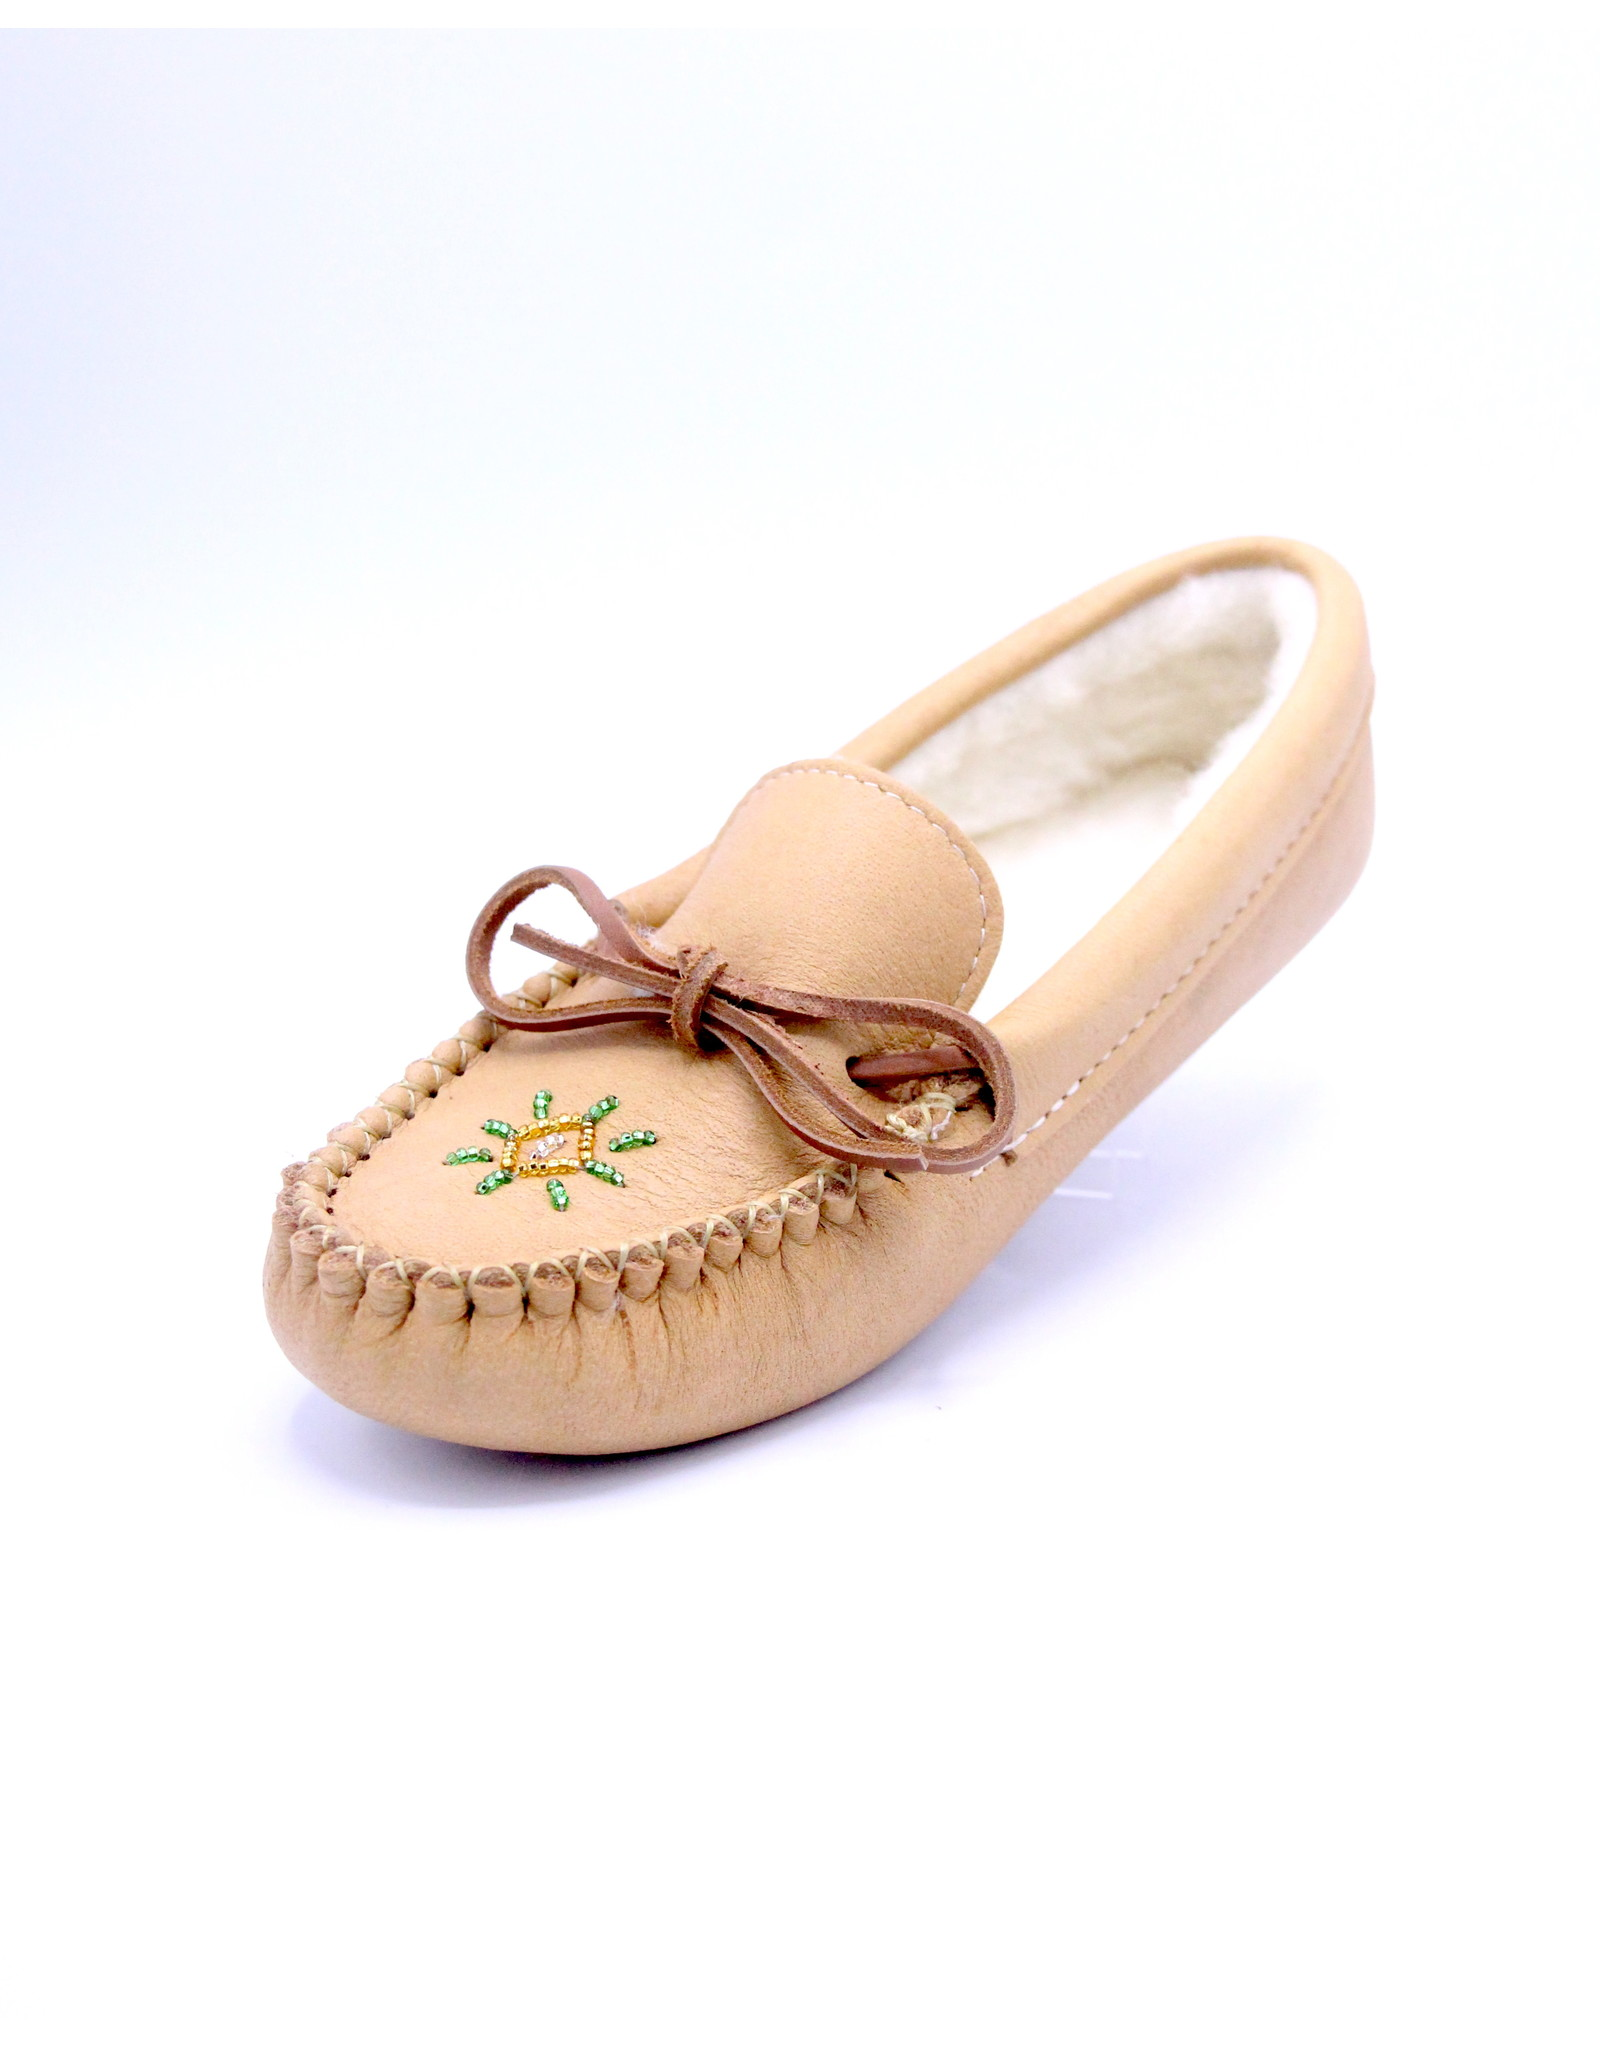 Ladies Lined and Beaded Moccasin Slippers - Brown